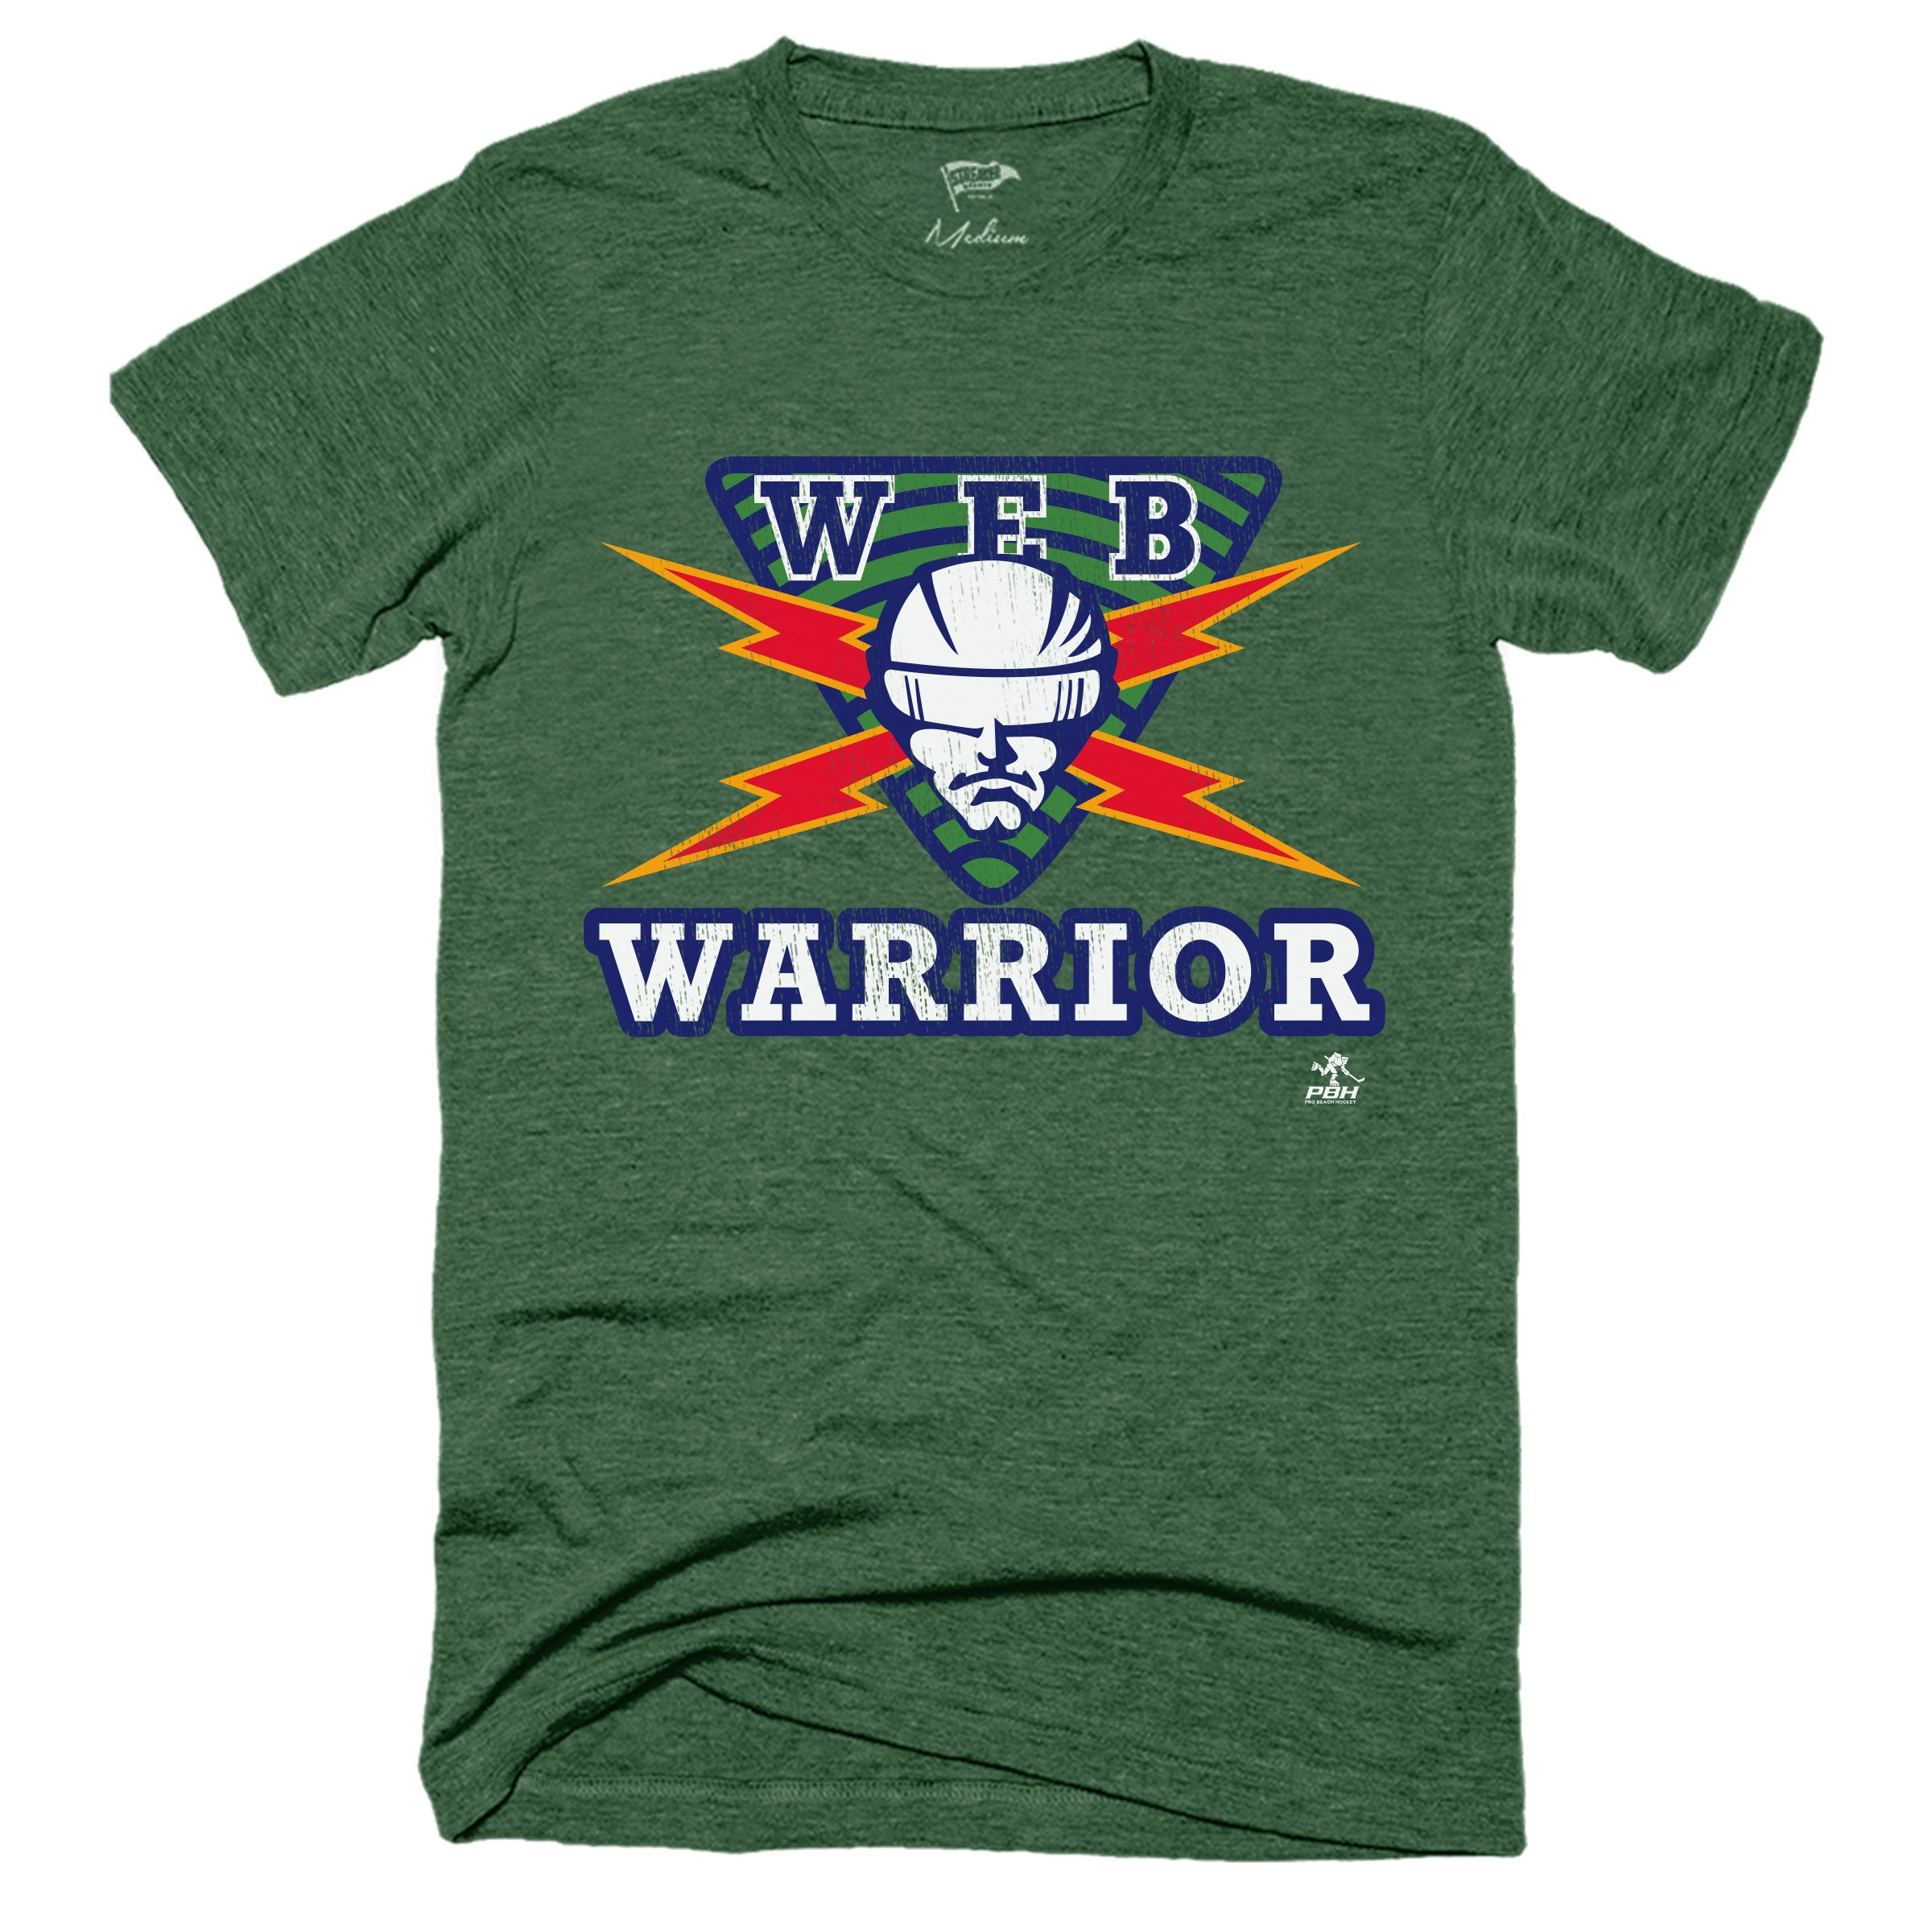 1998 Web Warriors Tee